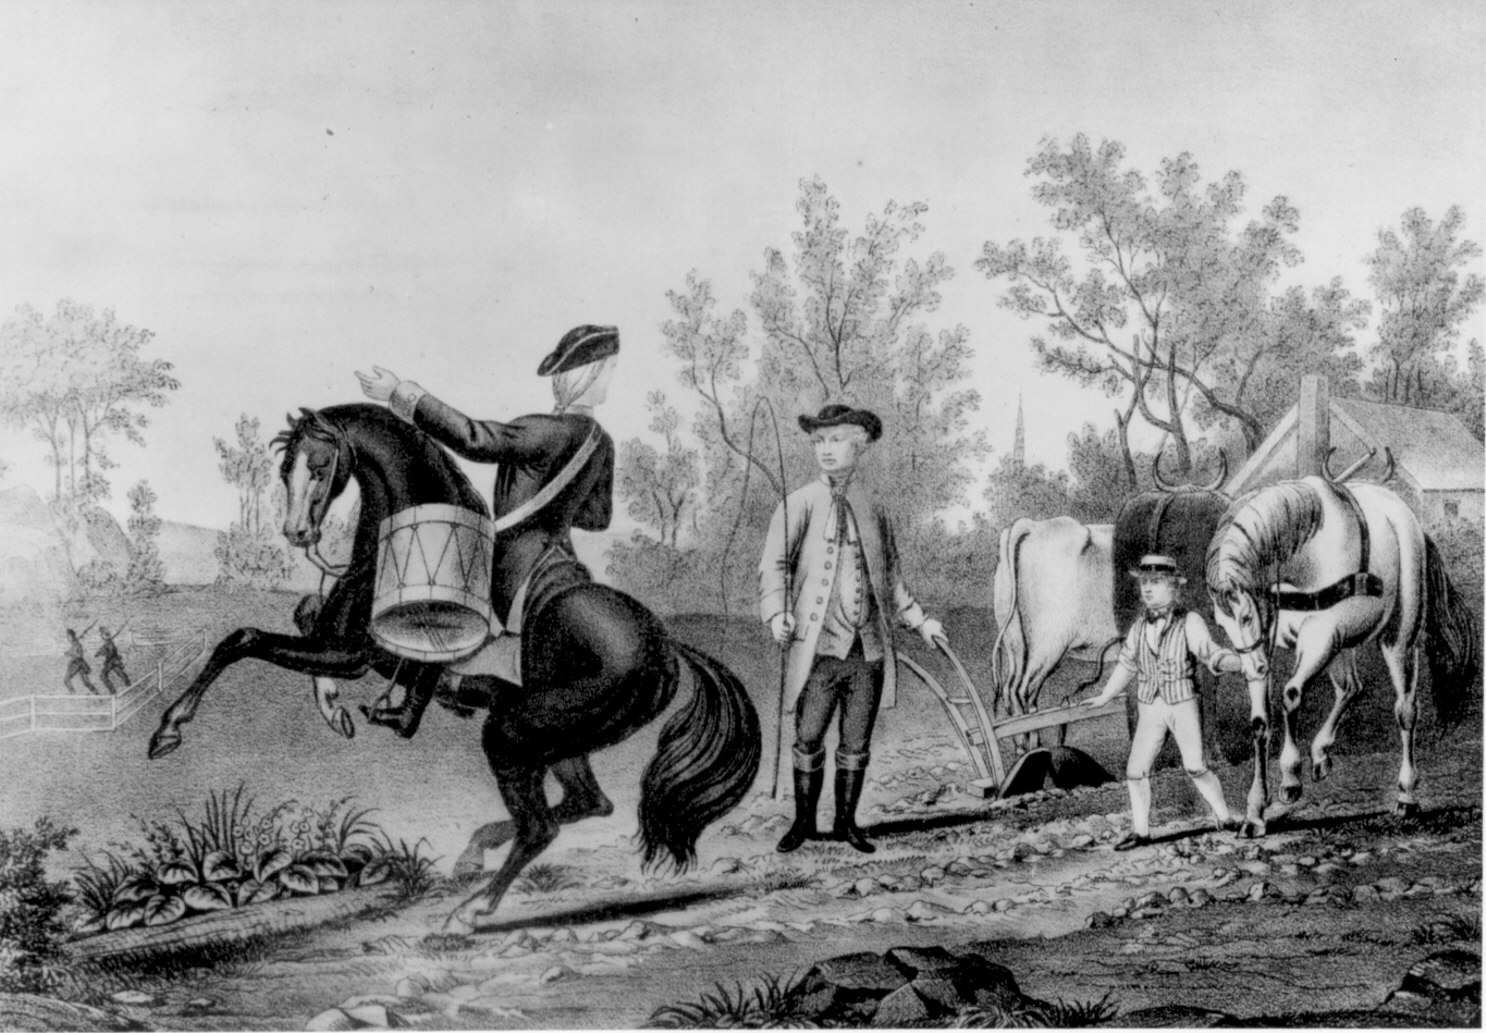 a research on the american revolutionary war Research within librarian-selected research topics on us revolutionary war from the questia online library, including full-text online books, academic journals, magazines, newspapers and more.